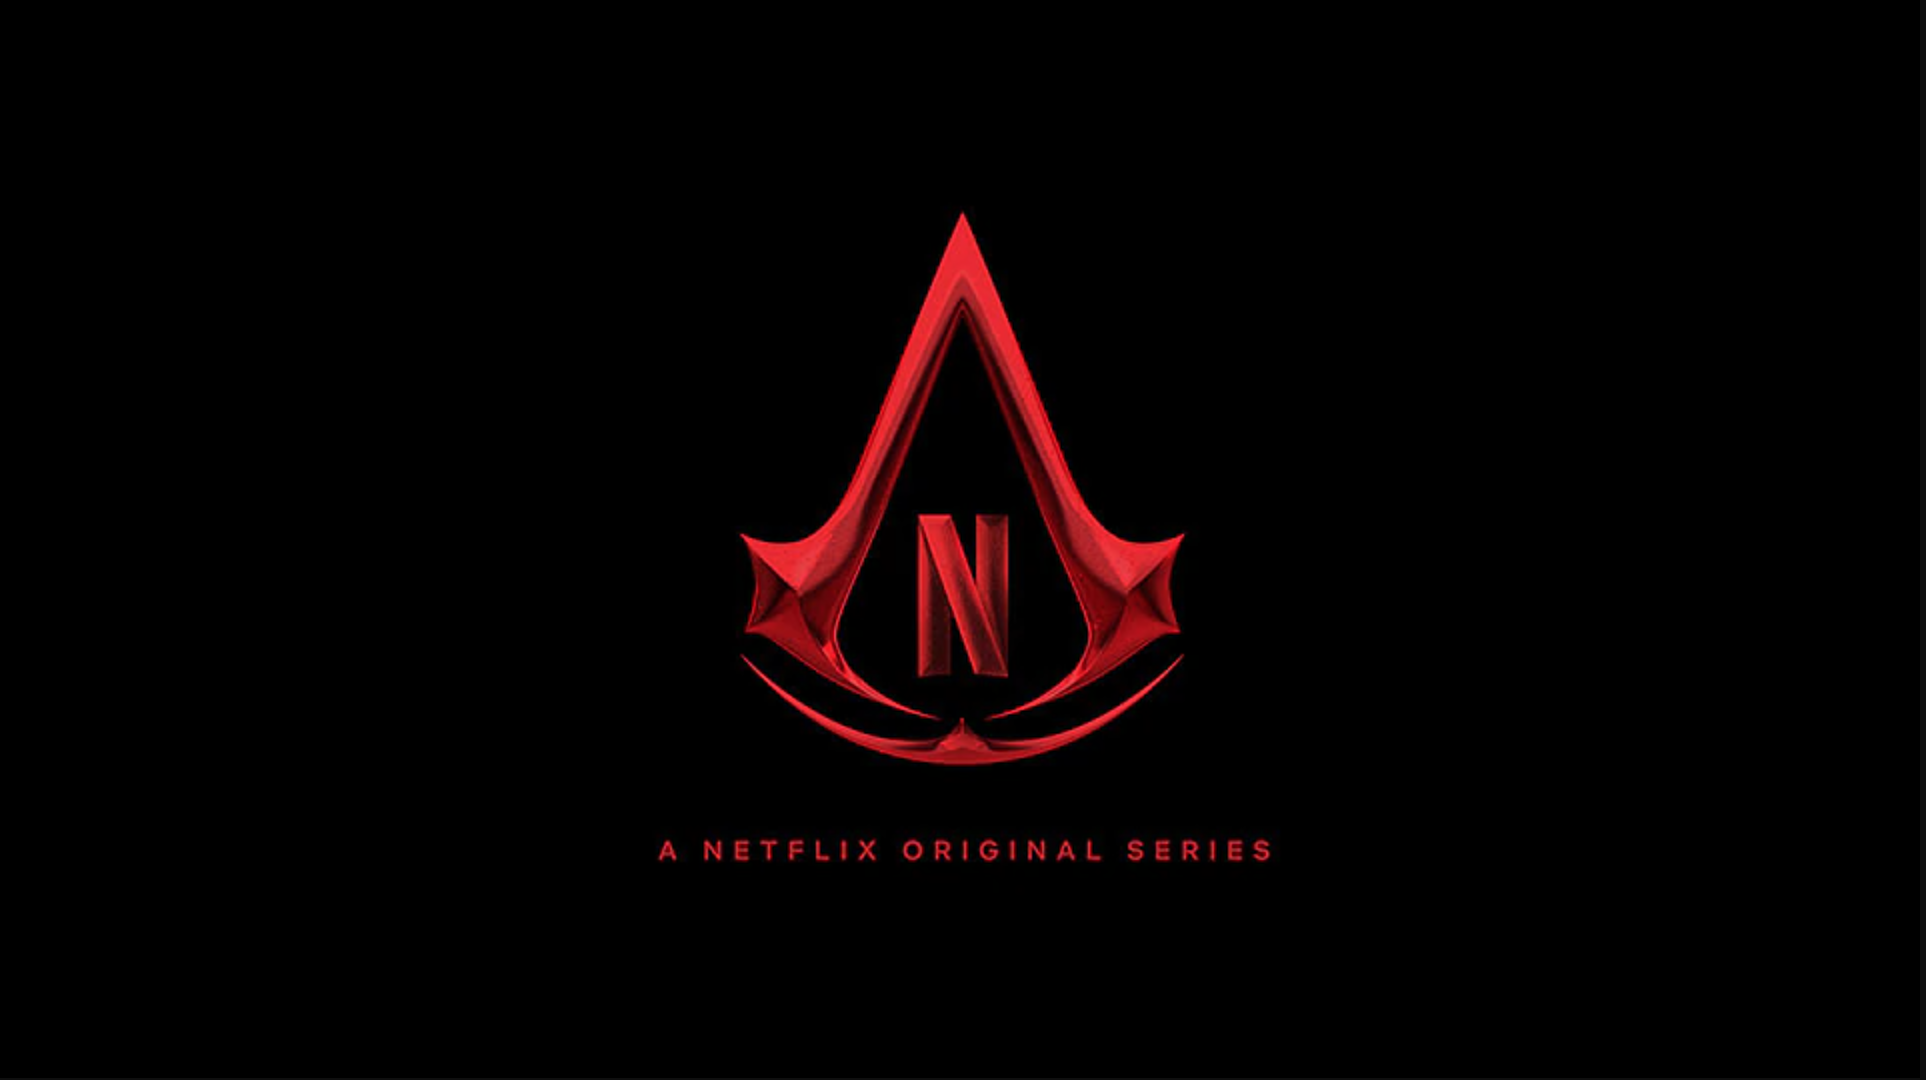 Assassin's Creed Netflix series confirmed – let's hope it's better than the movie | Trusted Reviews